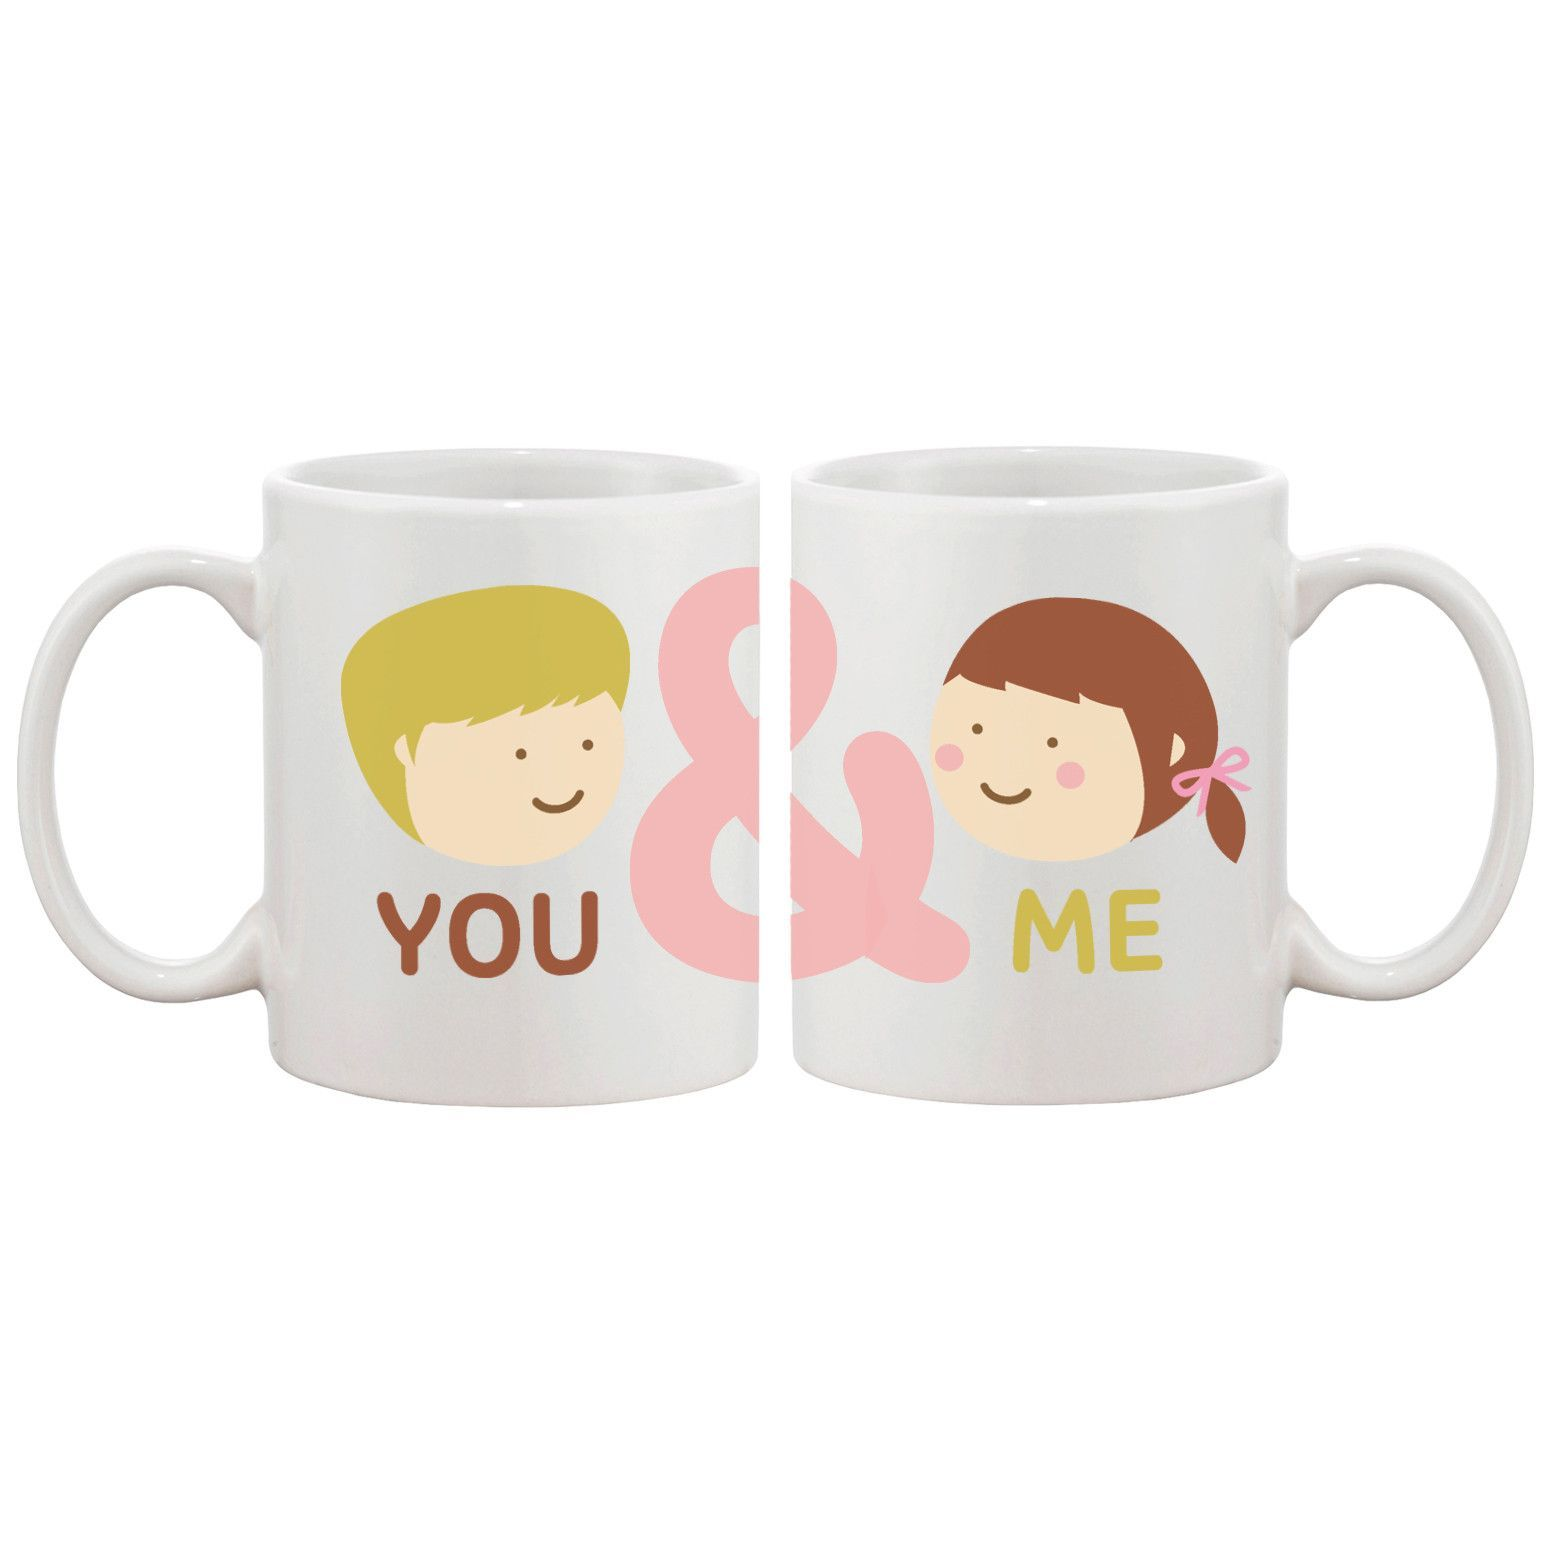 Cute Mug Designs Me Matching Couple Mugs Graphic Design Ceramic Coffee Cup On Ideas